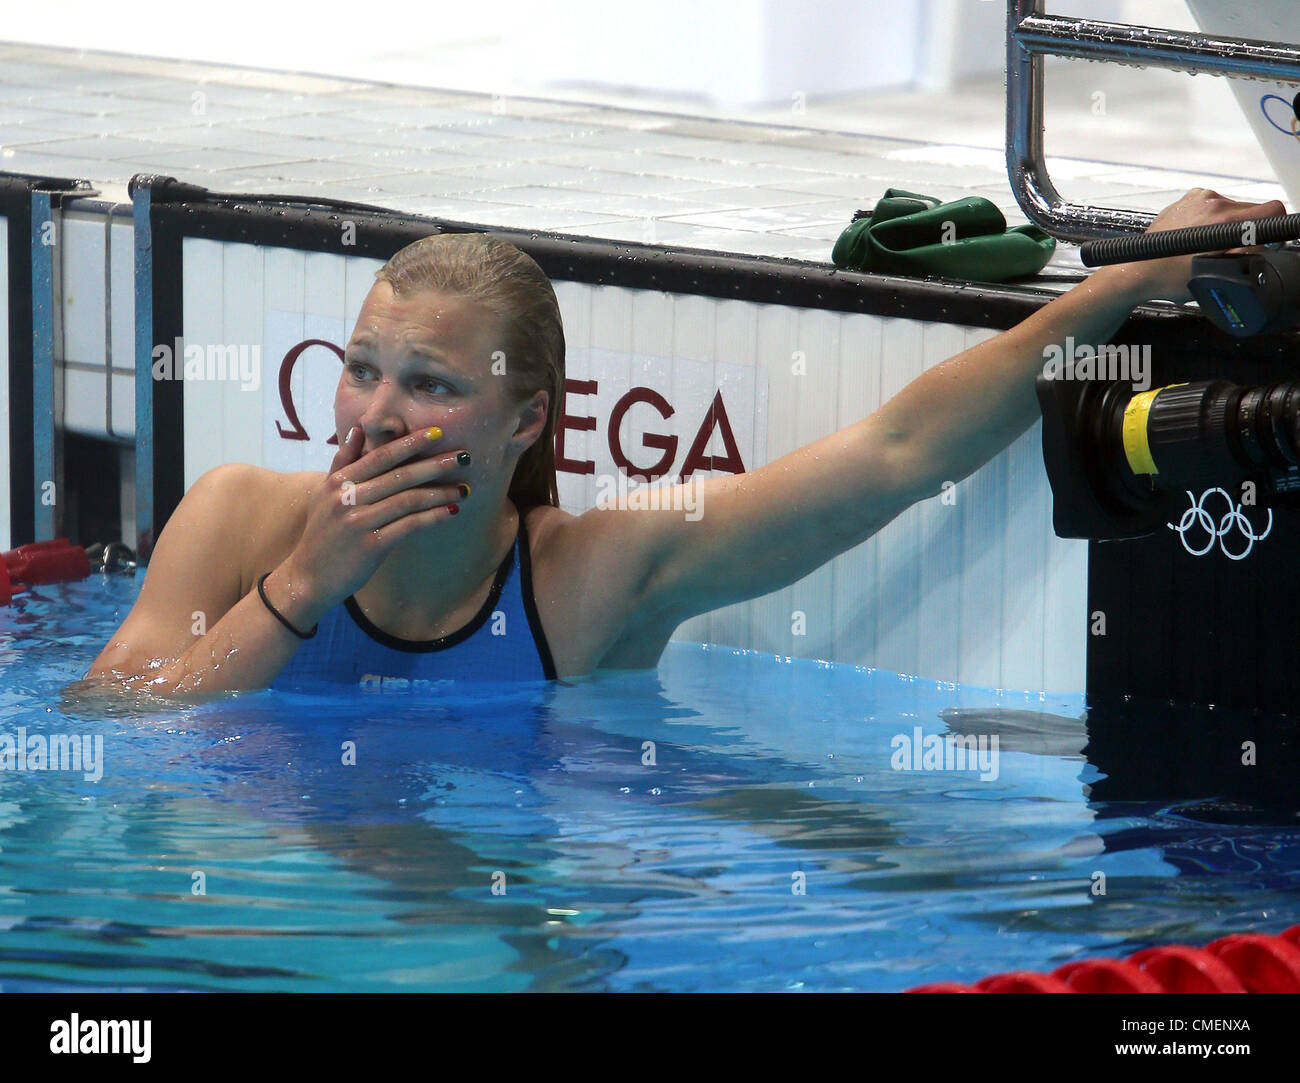 RUTA MEILUTYTE WINS GOLD LITHUANIA STRATFORD ENGLAND 30 July 2012 - Stock Image